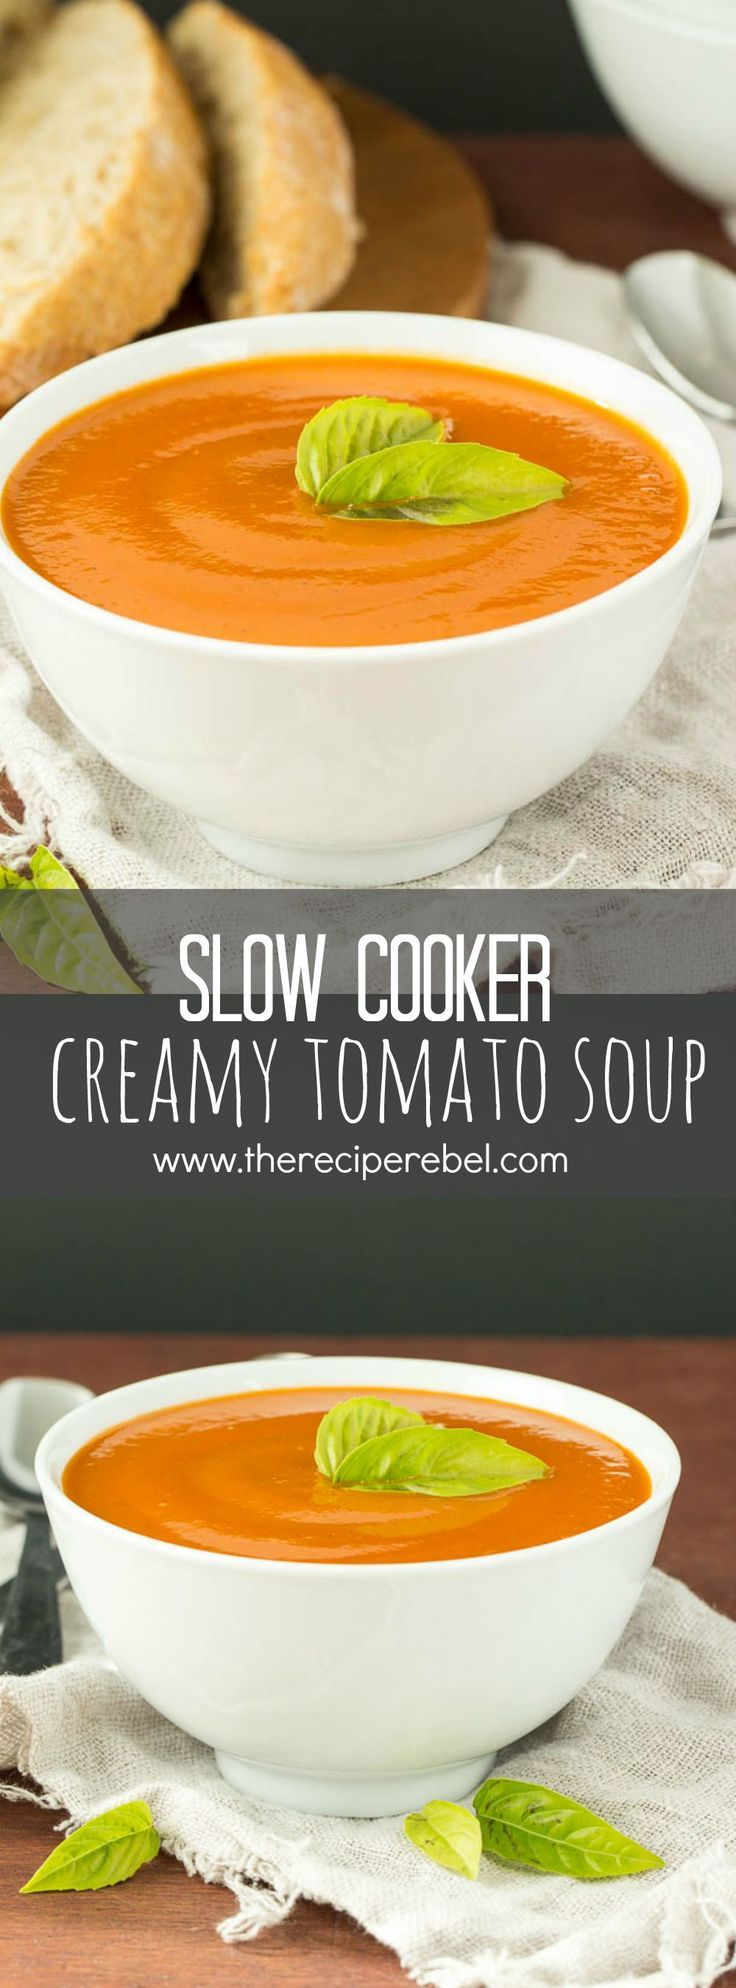 Slow Cooker Creamy Tomato Soup: Tomatoes and vegetables simmer away all day until tender, then they're pureed to make this ultra creamy, vibrant tomato soup that is secretly loaded with veggies! Your